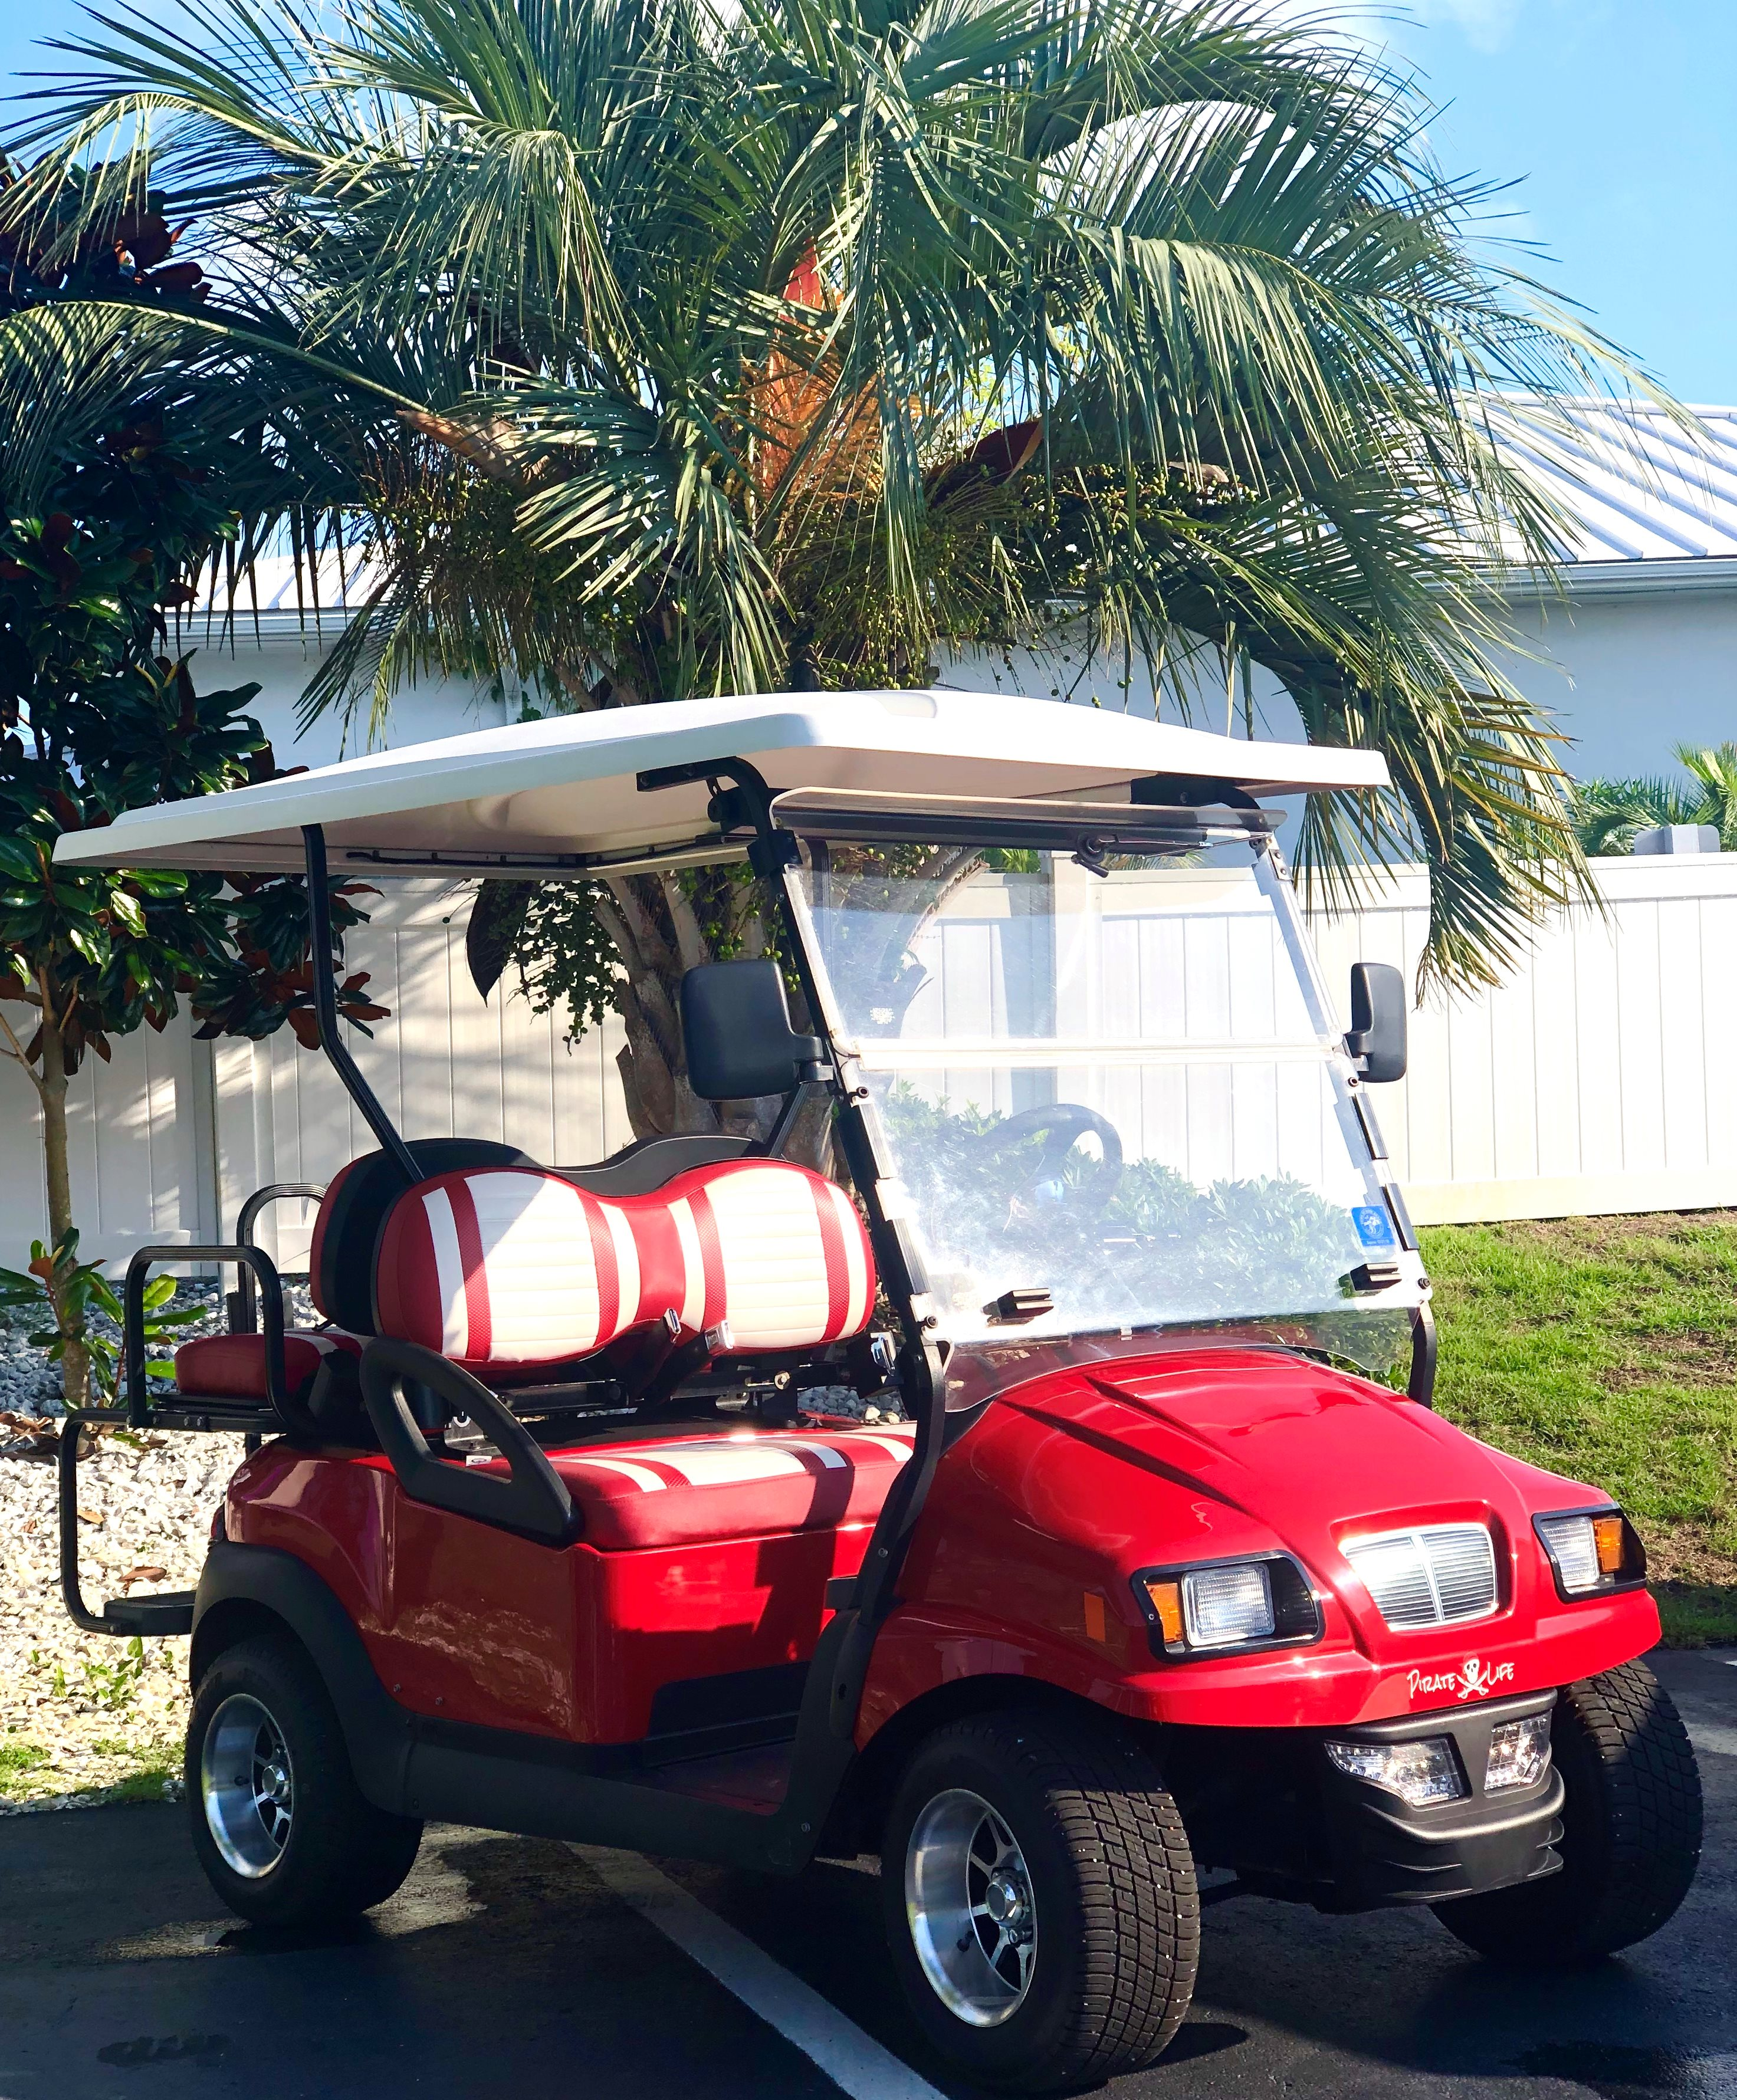 USED 2015 Club Car Precedent with Phantom Body-COMES WITH ENCLOSURE AND BEACH CHAIR RACK